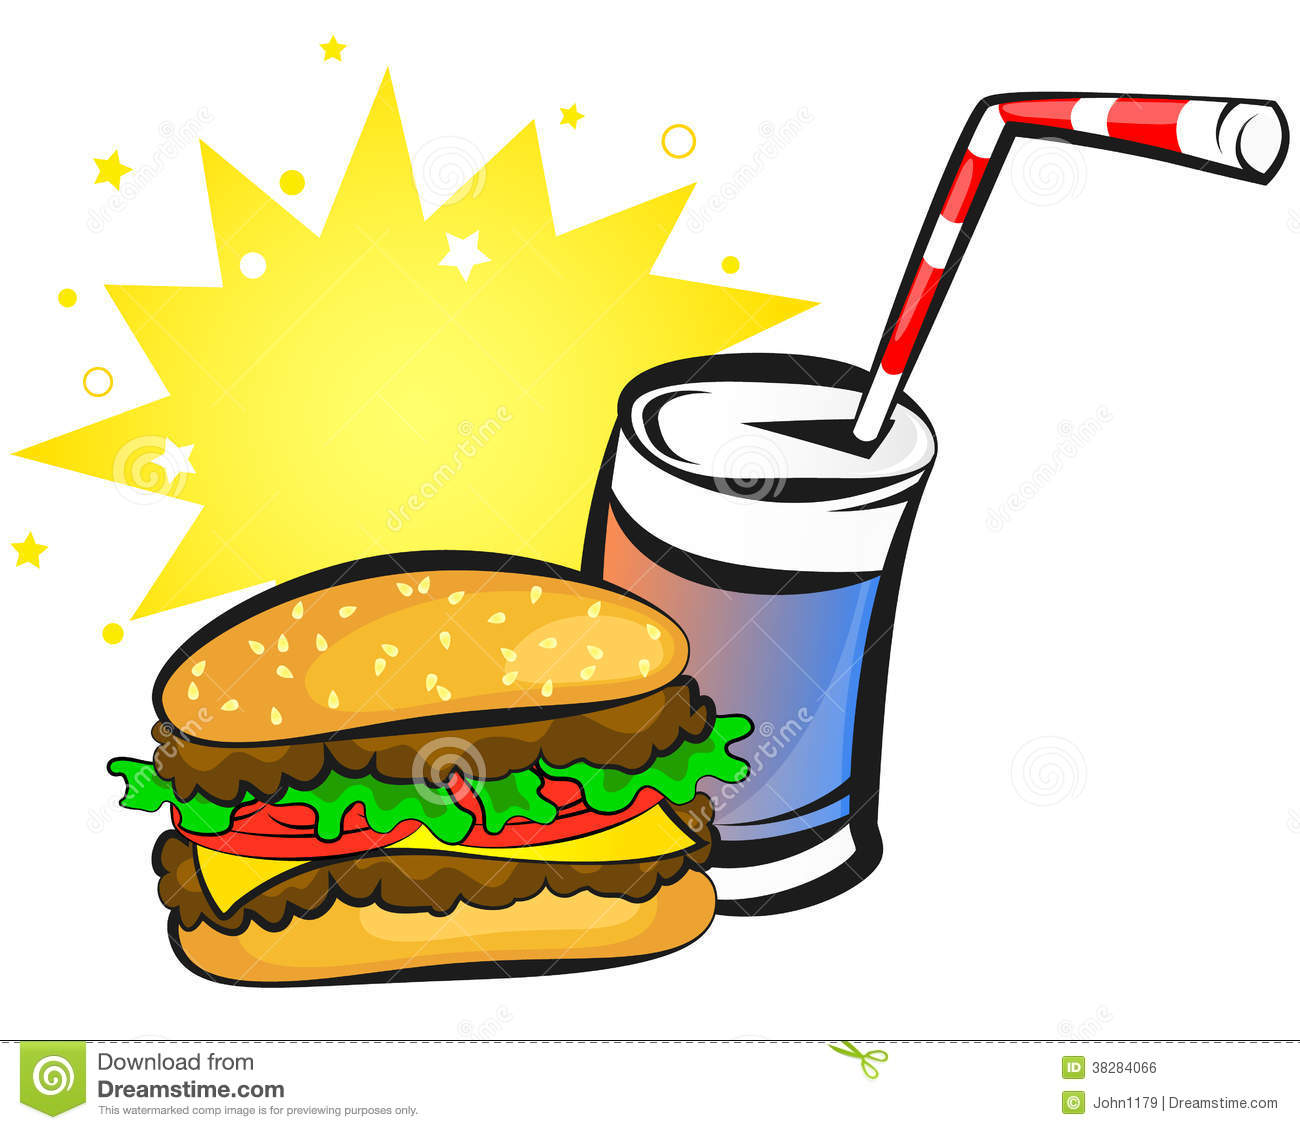 Royalty Free Stock Image Burger Soda Image38284066 on cartoon coke